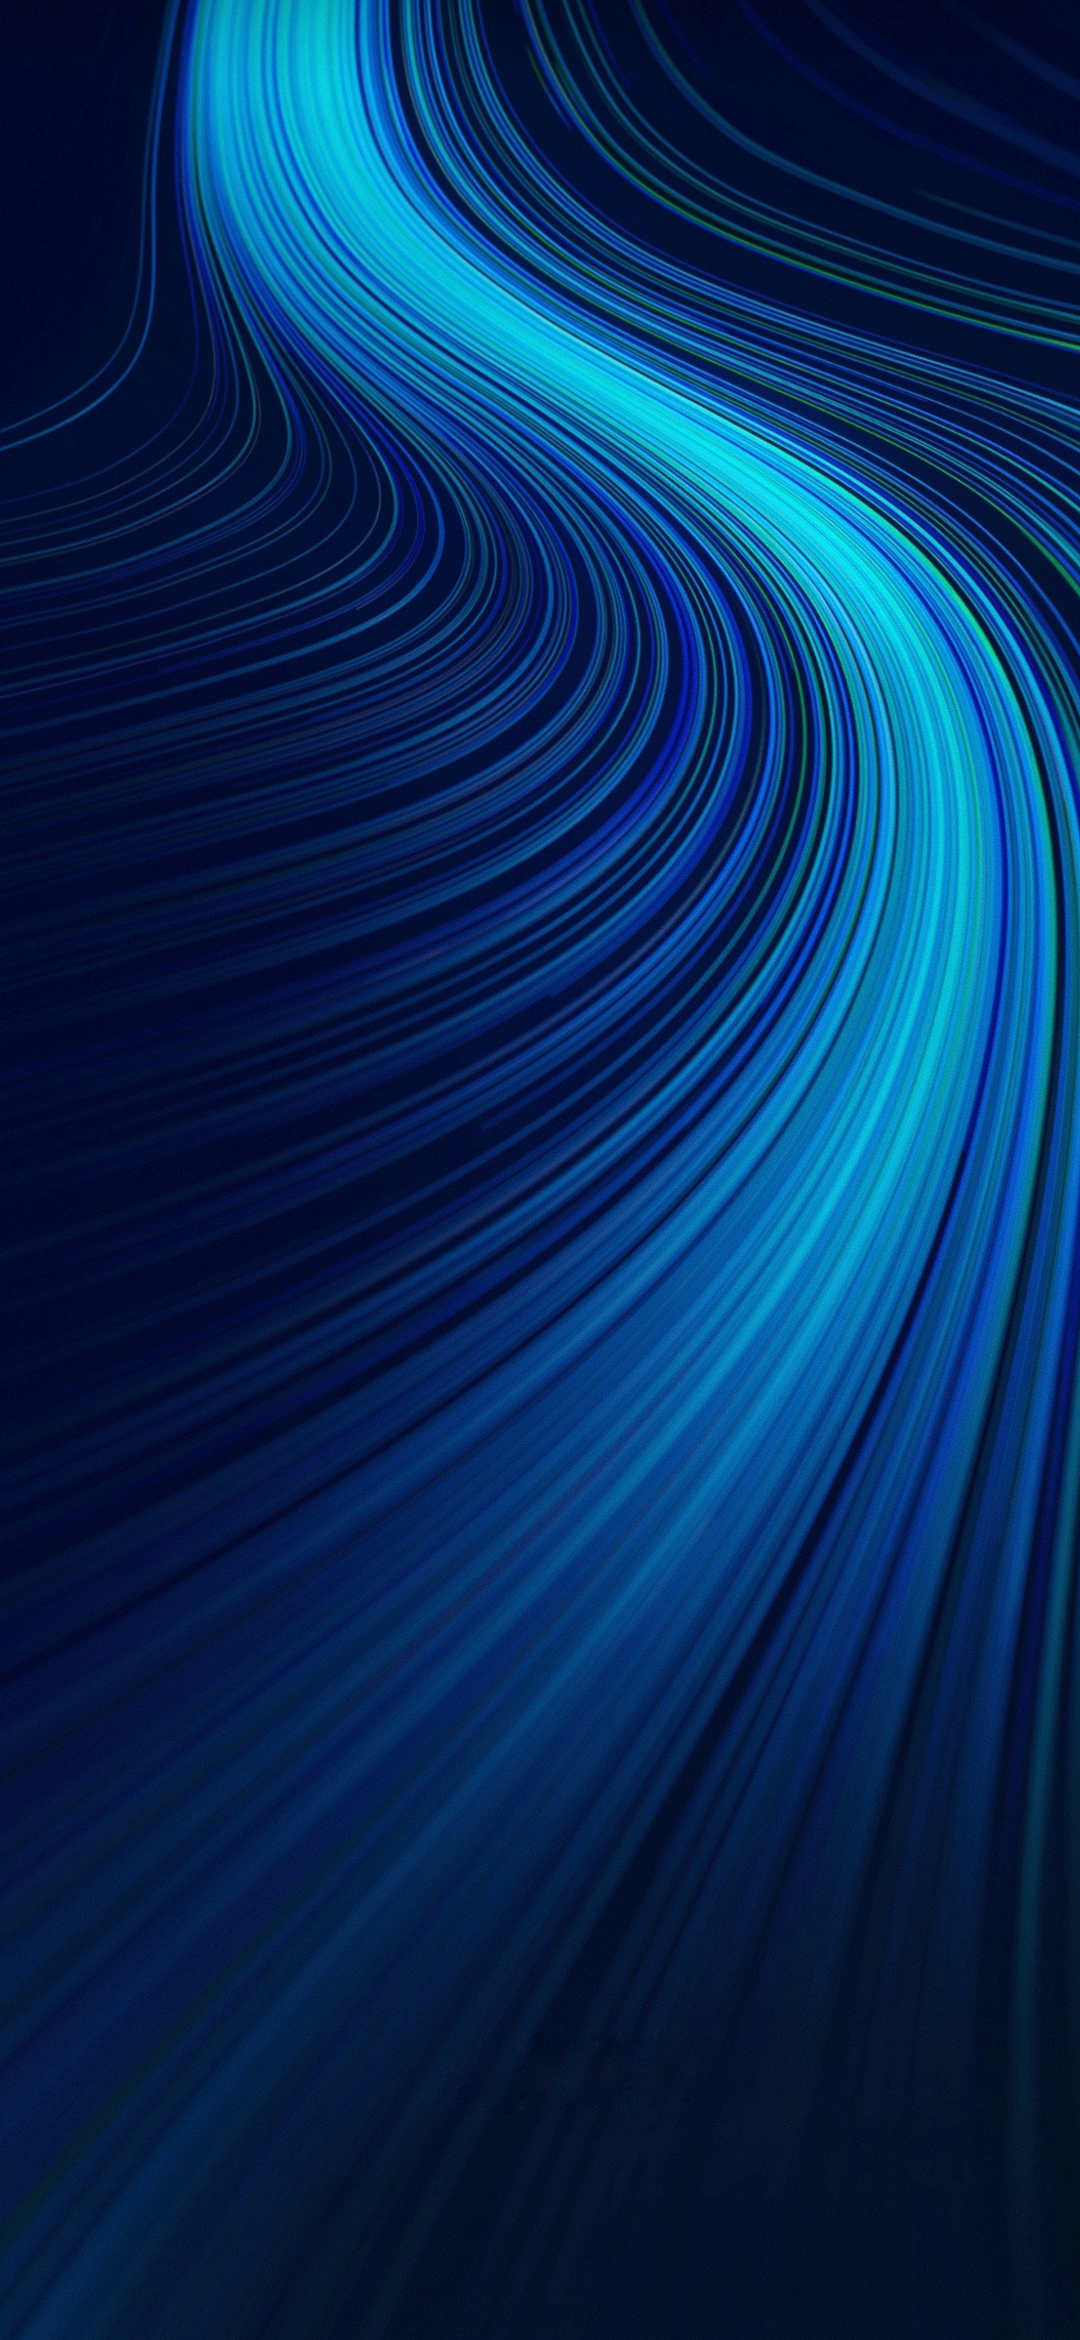 Honor X10 Wallpaper Ytechb Exclusive In 2020 Stock Wallpaper Blue Wallpaper Iphone Abstract Iphone Wallpaper